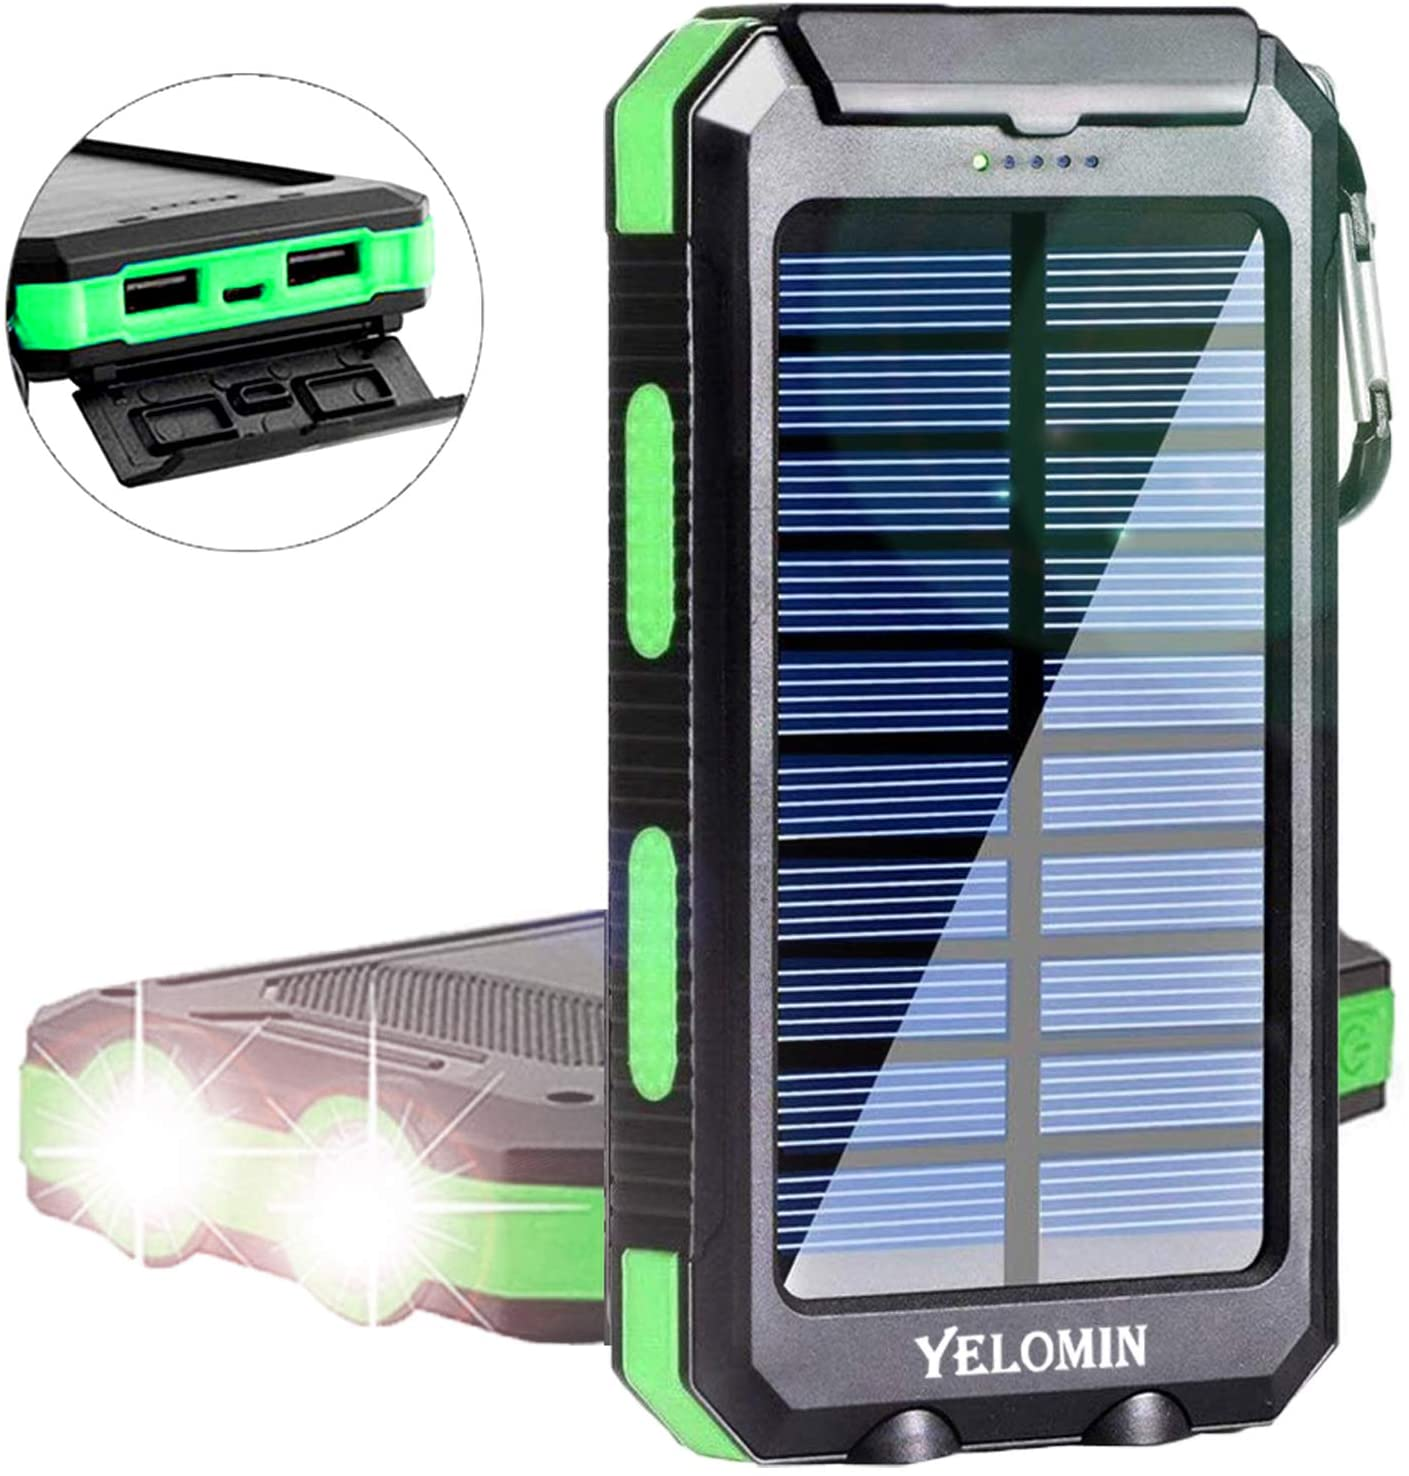 Solar Charger,Yelomin 20000mAh Portable Outdoor Mobile Power Bank,Camping Travel External Backup Battery Pack Dual USB 5V Outputs 2 LED Light Flashlight with Compass